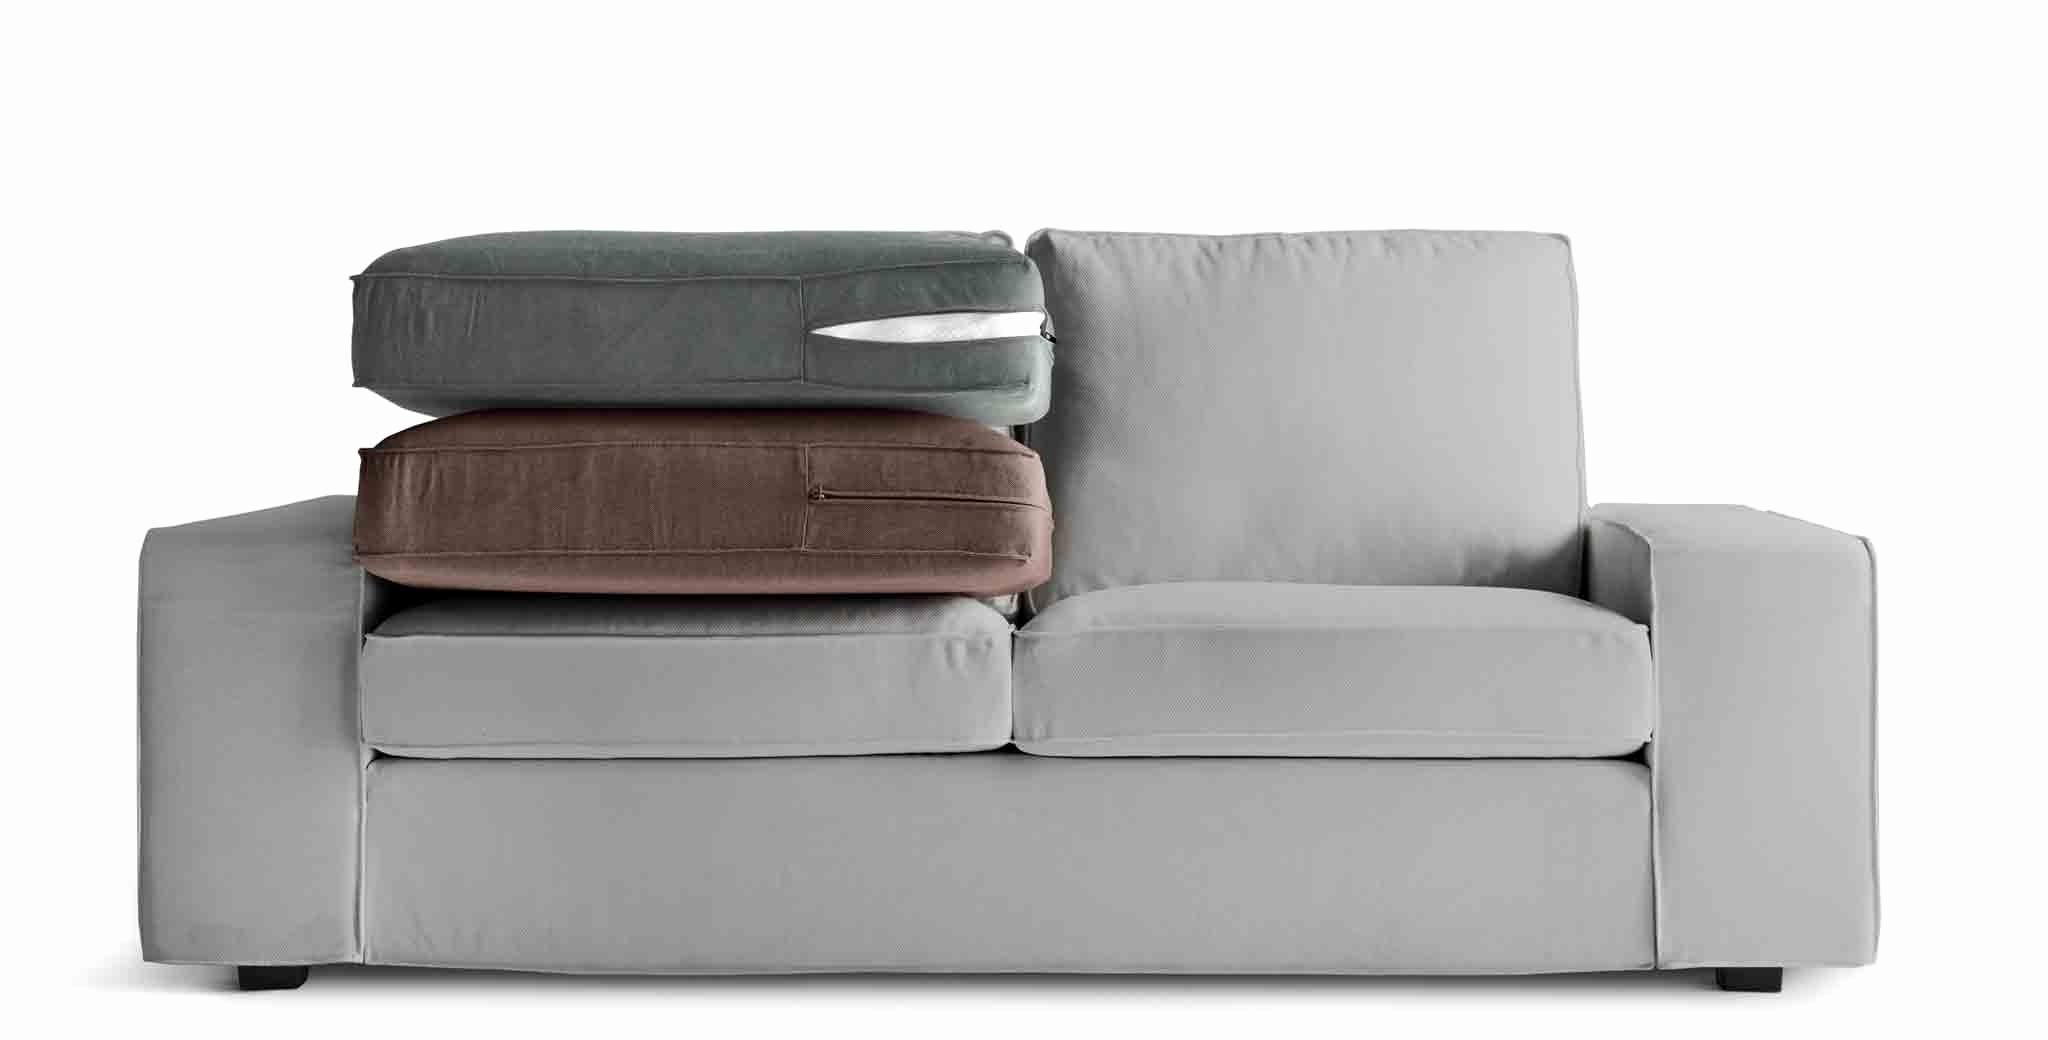 Sofas With Removable Covers With Regard To Recent Best Sofa Covers Ikea 2018 – Couches And Sofas Ideas (View 16 of 20)